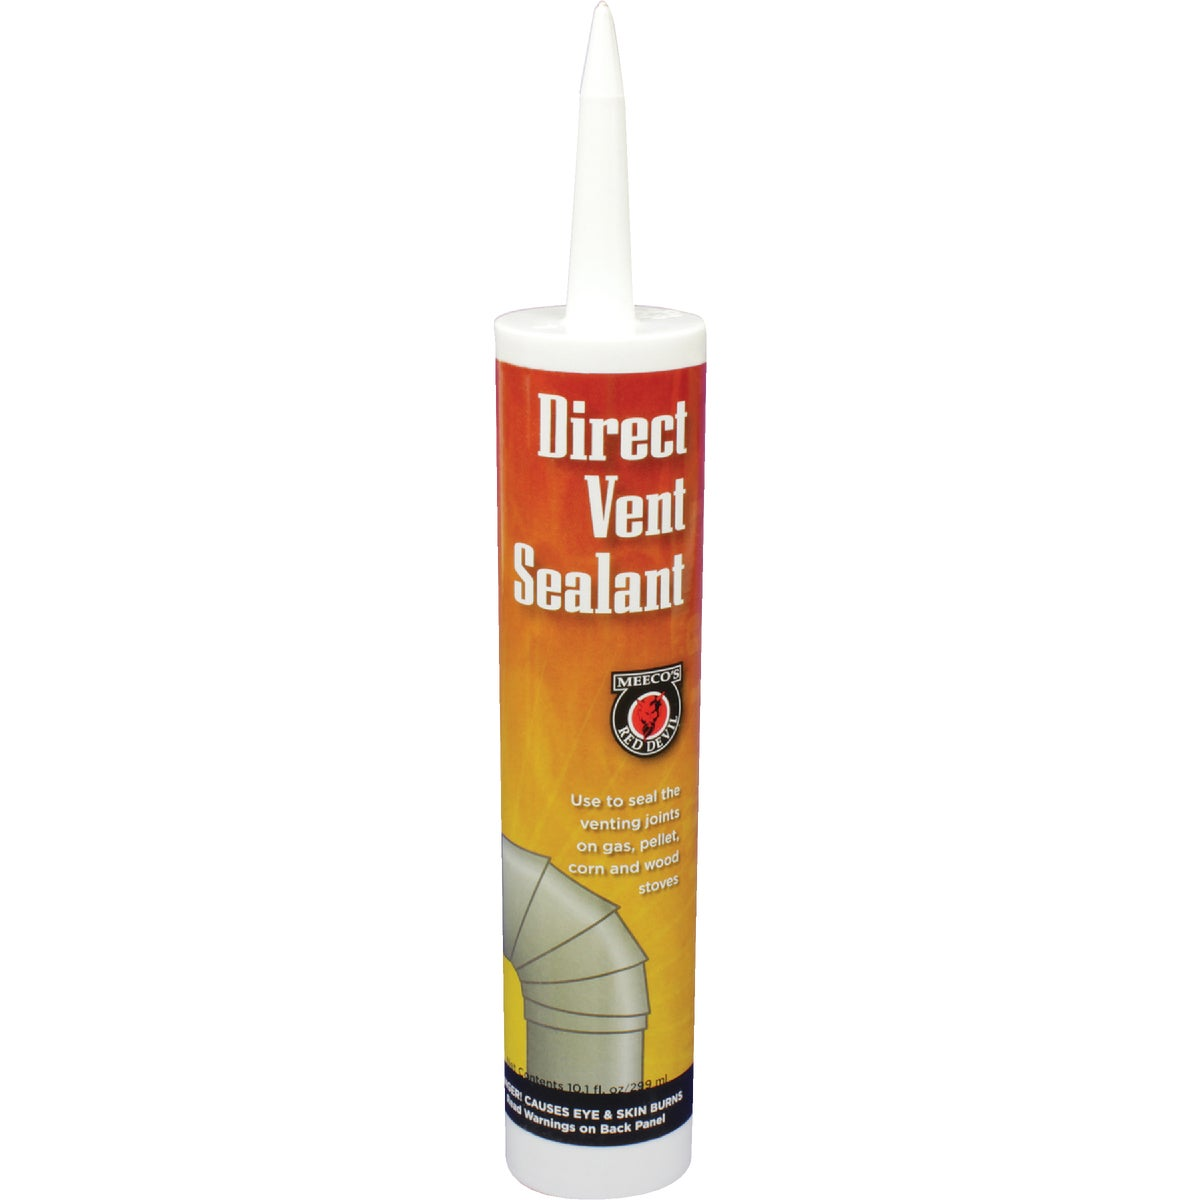 BLK DIRECT VENT SEALANT - 615 by Meeco Mfg